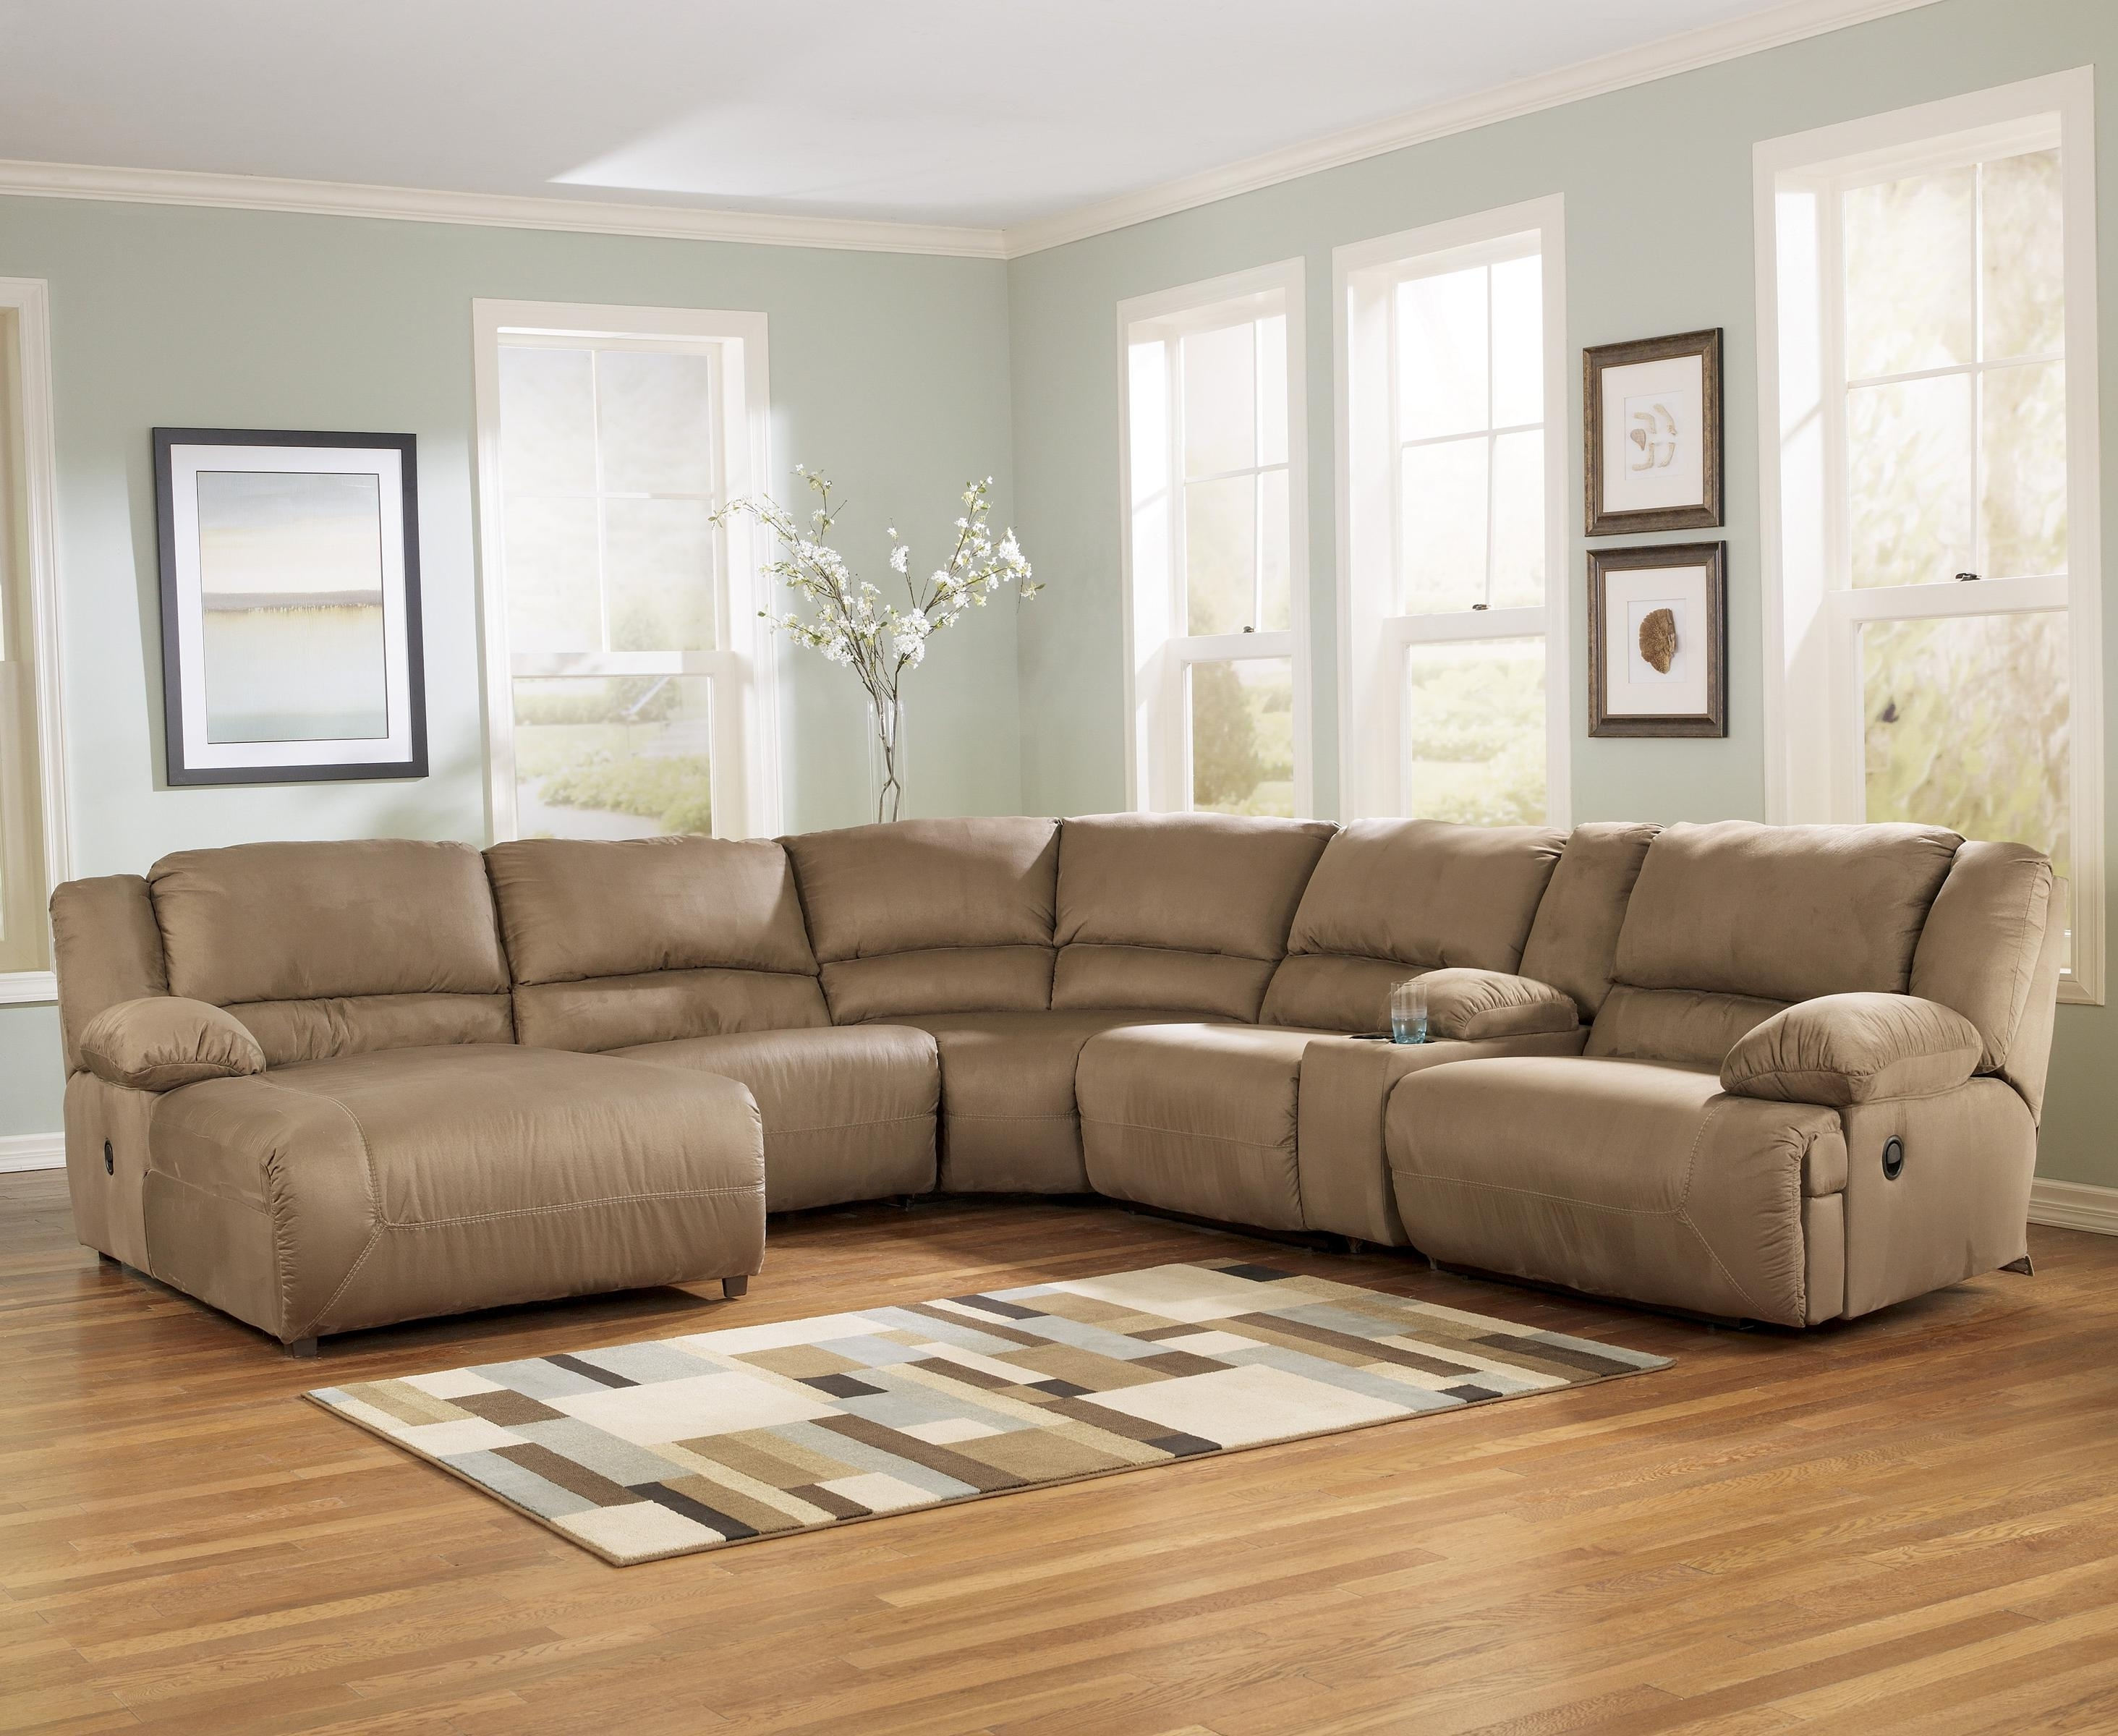 Home Furniture Sectional Sofas In Favorite Home : Cute Sectional Sofas With Recliners And Chaise Home Designs (View 5 of 20)